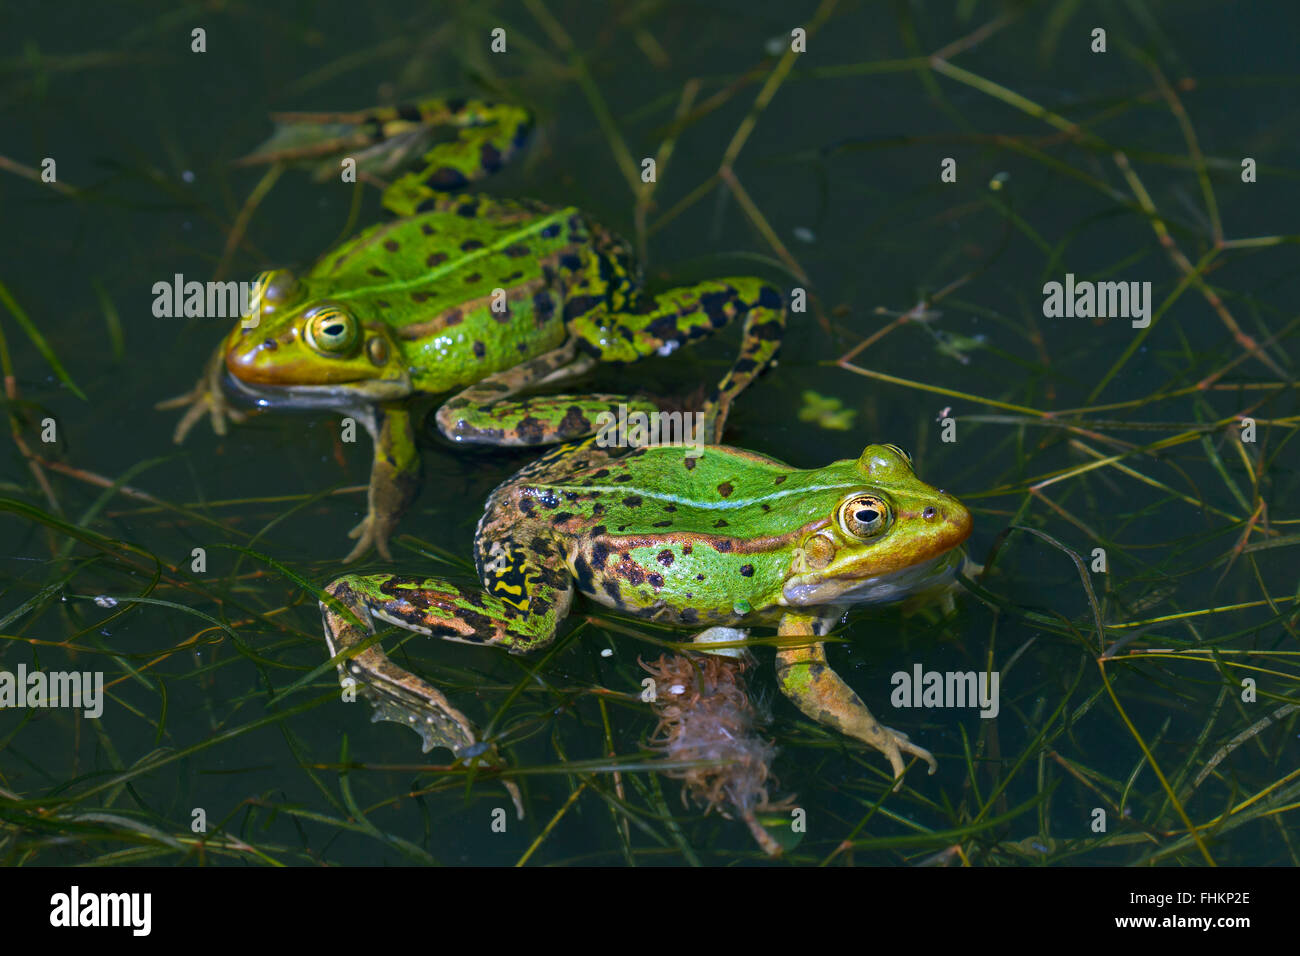 Two edible frogs / green frog (Pelophylax kl. esculentus / Rana kl. esculenta) floating in pond in the mating season - Stock Image